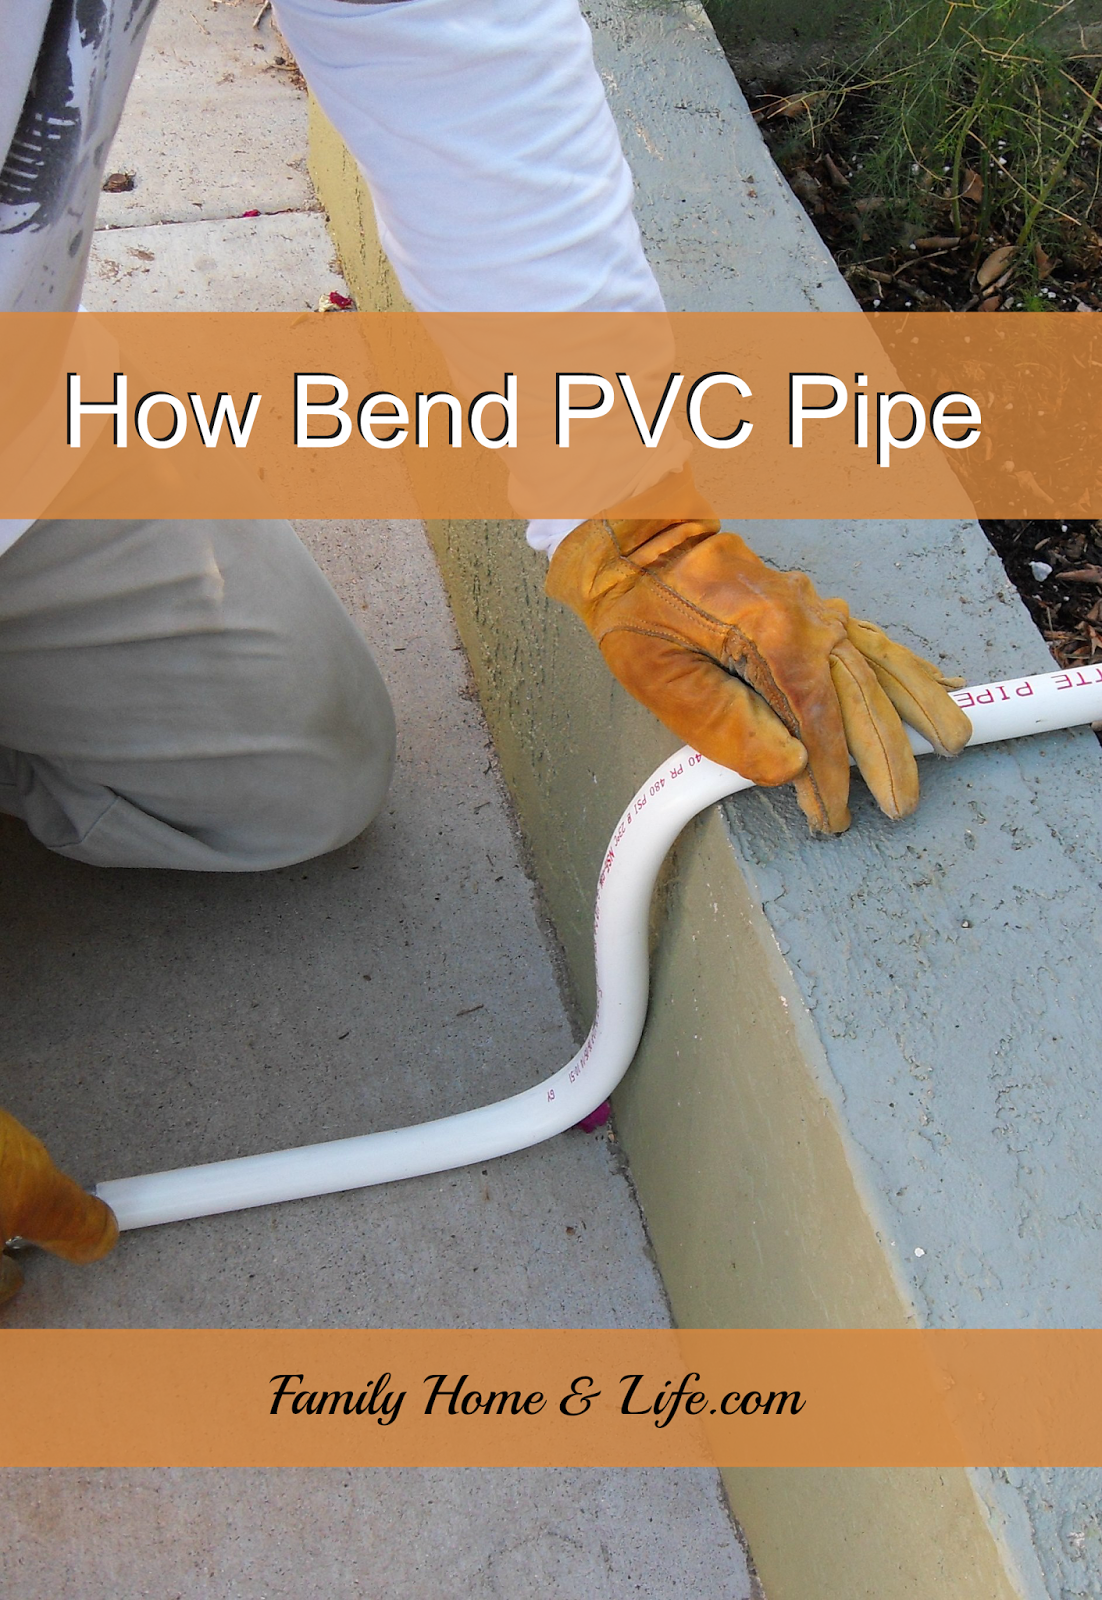 httpwwwfamilyhomeandlifecom201410how to bend shape pvc pipehtml httpwwwfamilyhomeandlifecom201410how to bend shape pvc pipe